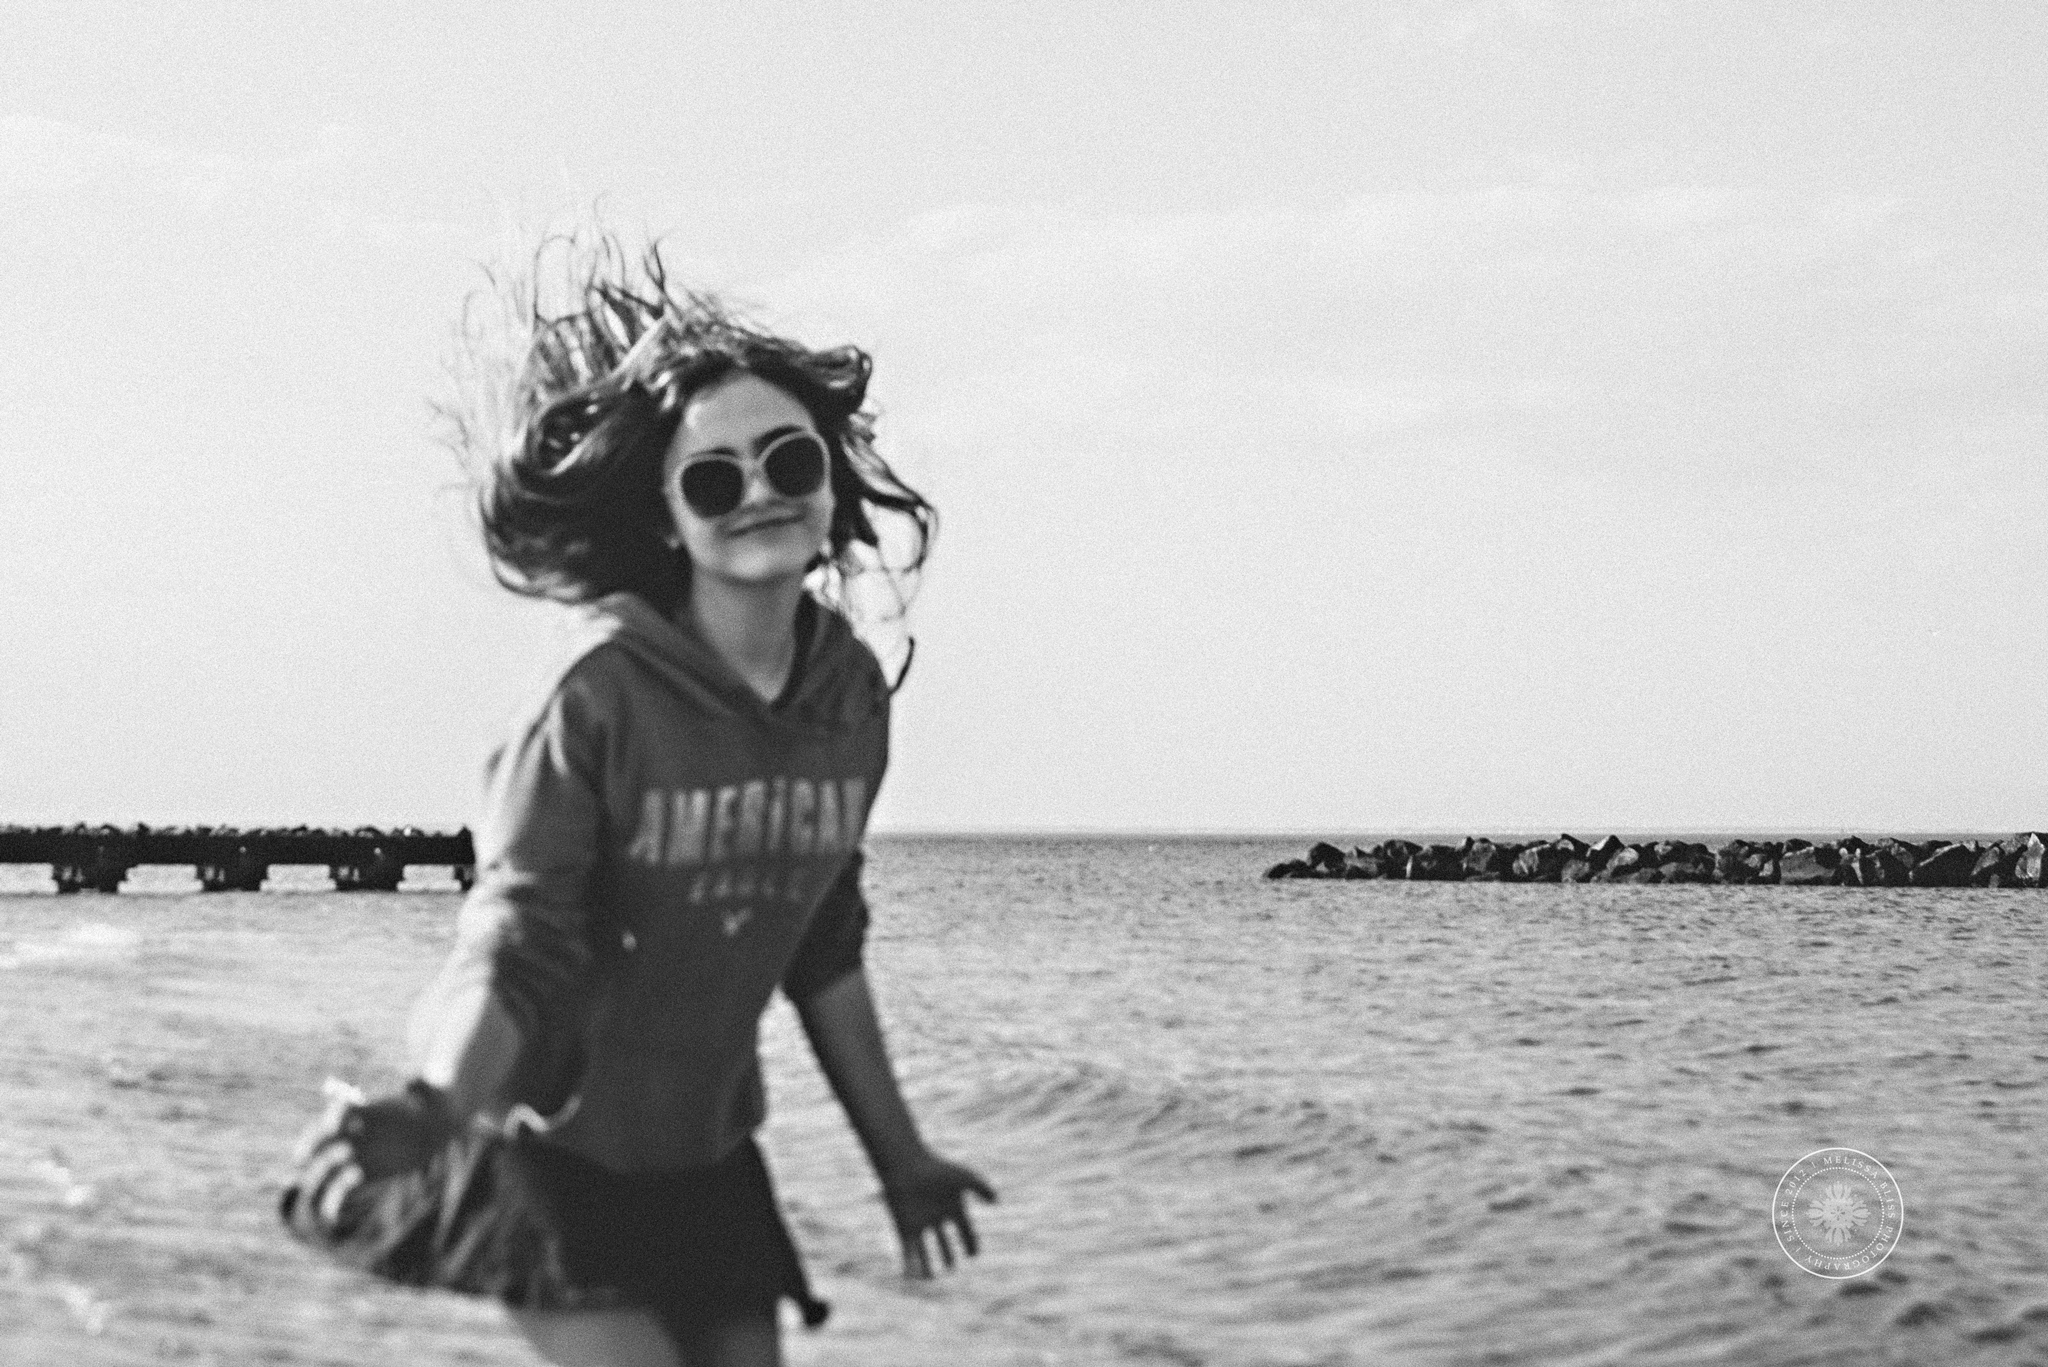 melissa-bliss-photography-fun-candid-beach-photos-teen-in-sunglasses-black-and-white